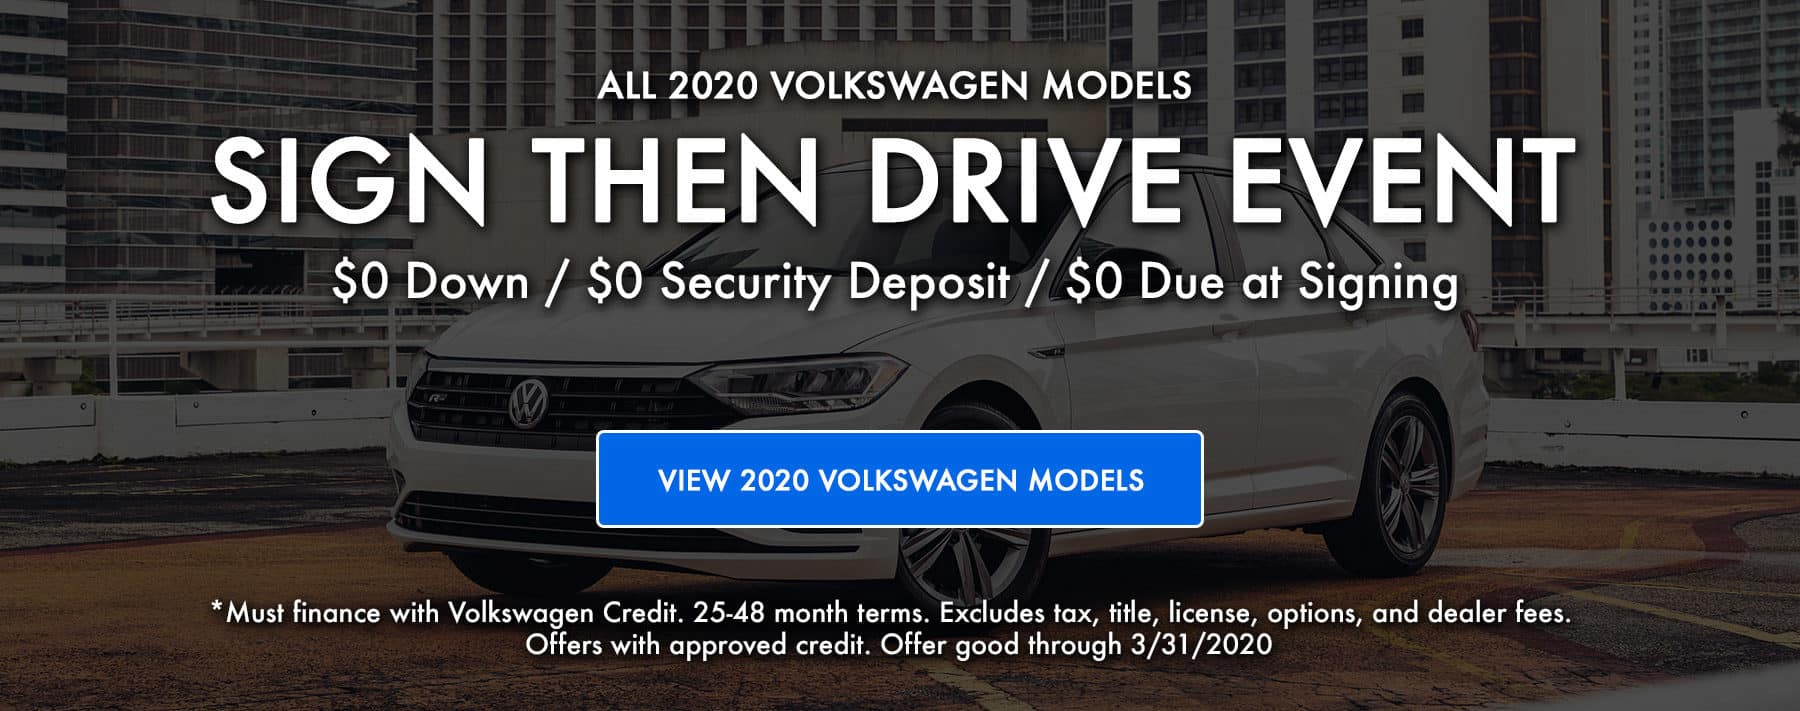 Sign Then Drive event on all 2020 VW Models